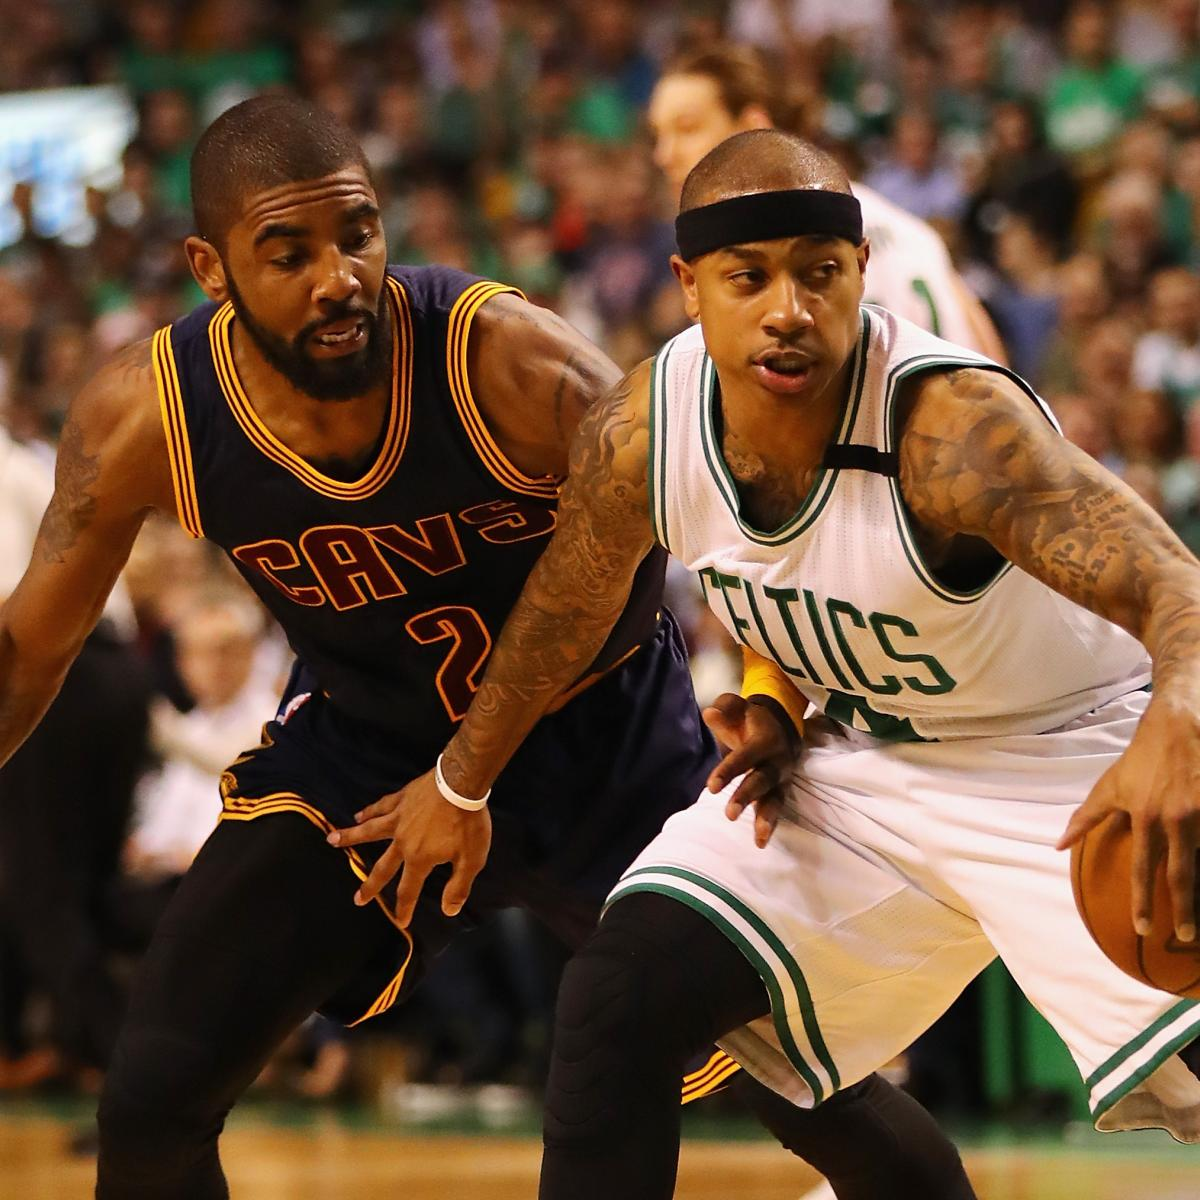 Warriors Come Out To Play Bleacher Report: Cavs, Celtics Both Come Out Winners In Kyrie Irving